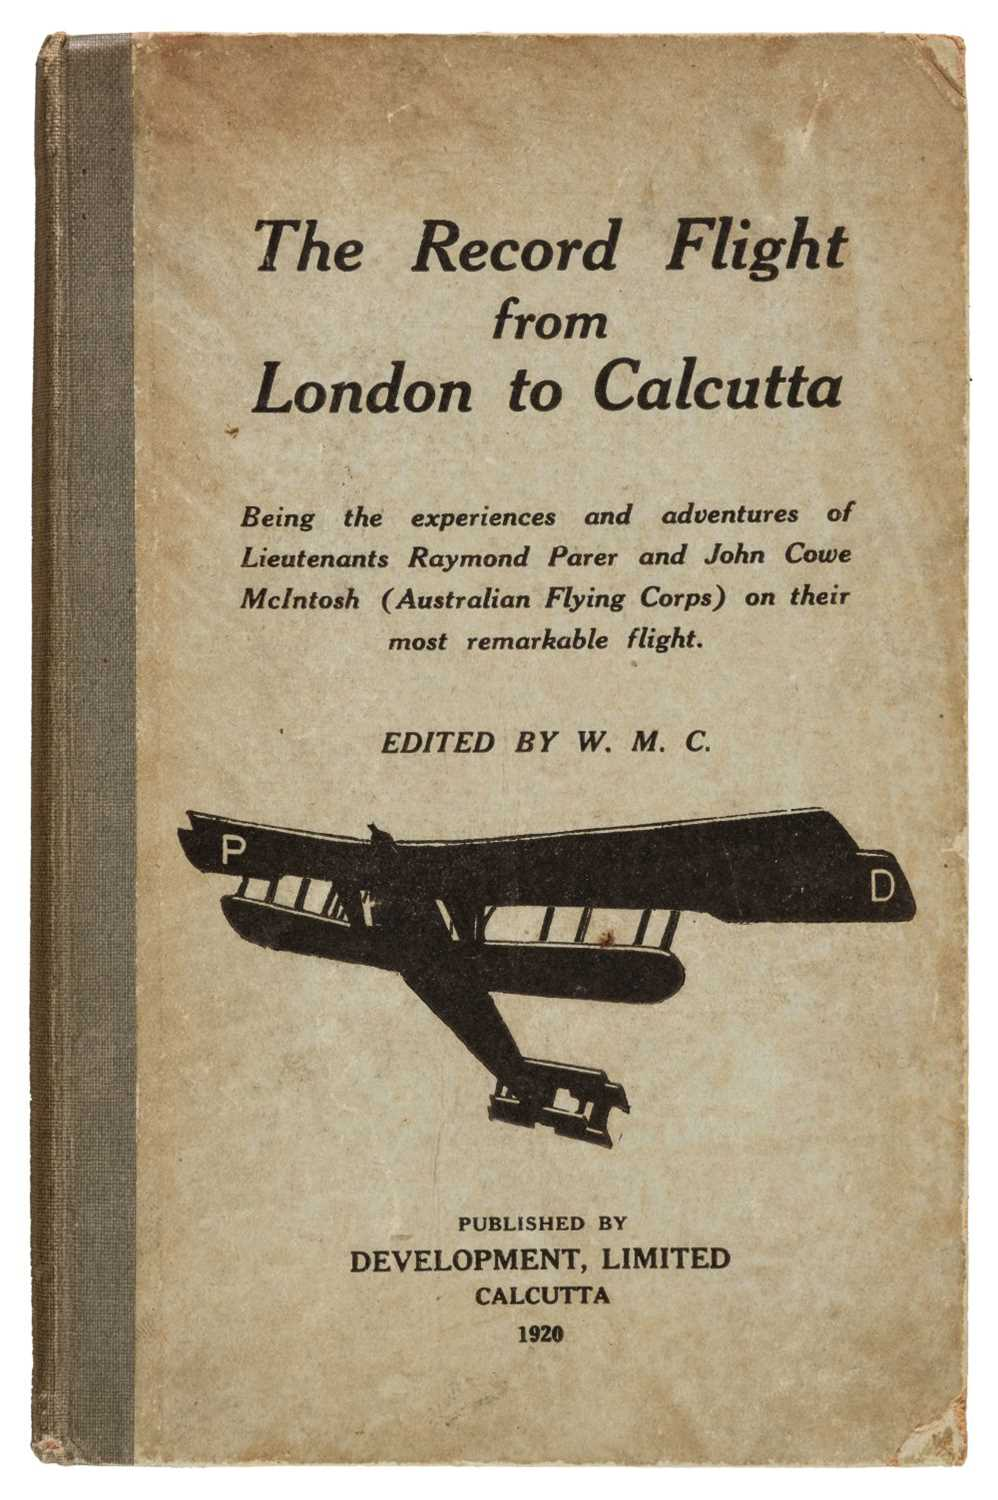 Lot 8 - C[airncross] (W.M., editor). The Record Flight from London to Calcutta... , 1st edition, 1920